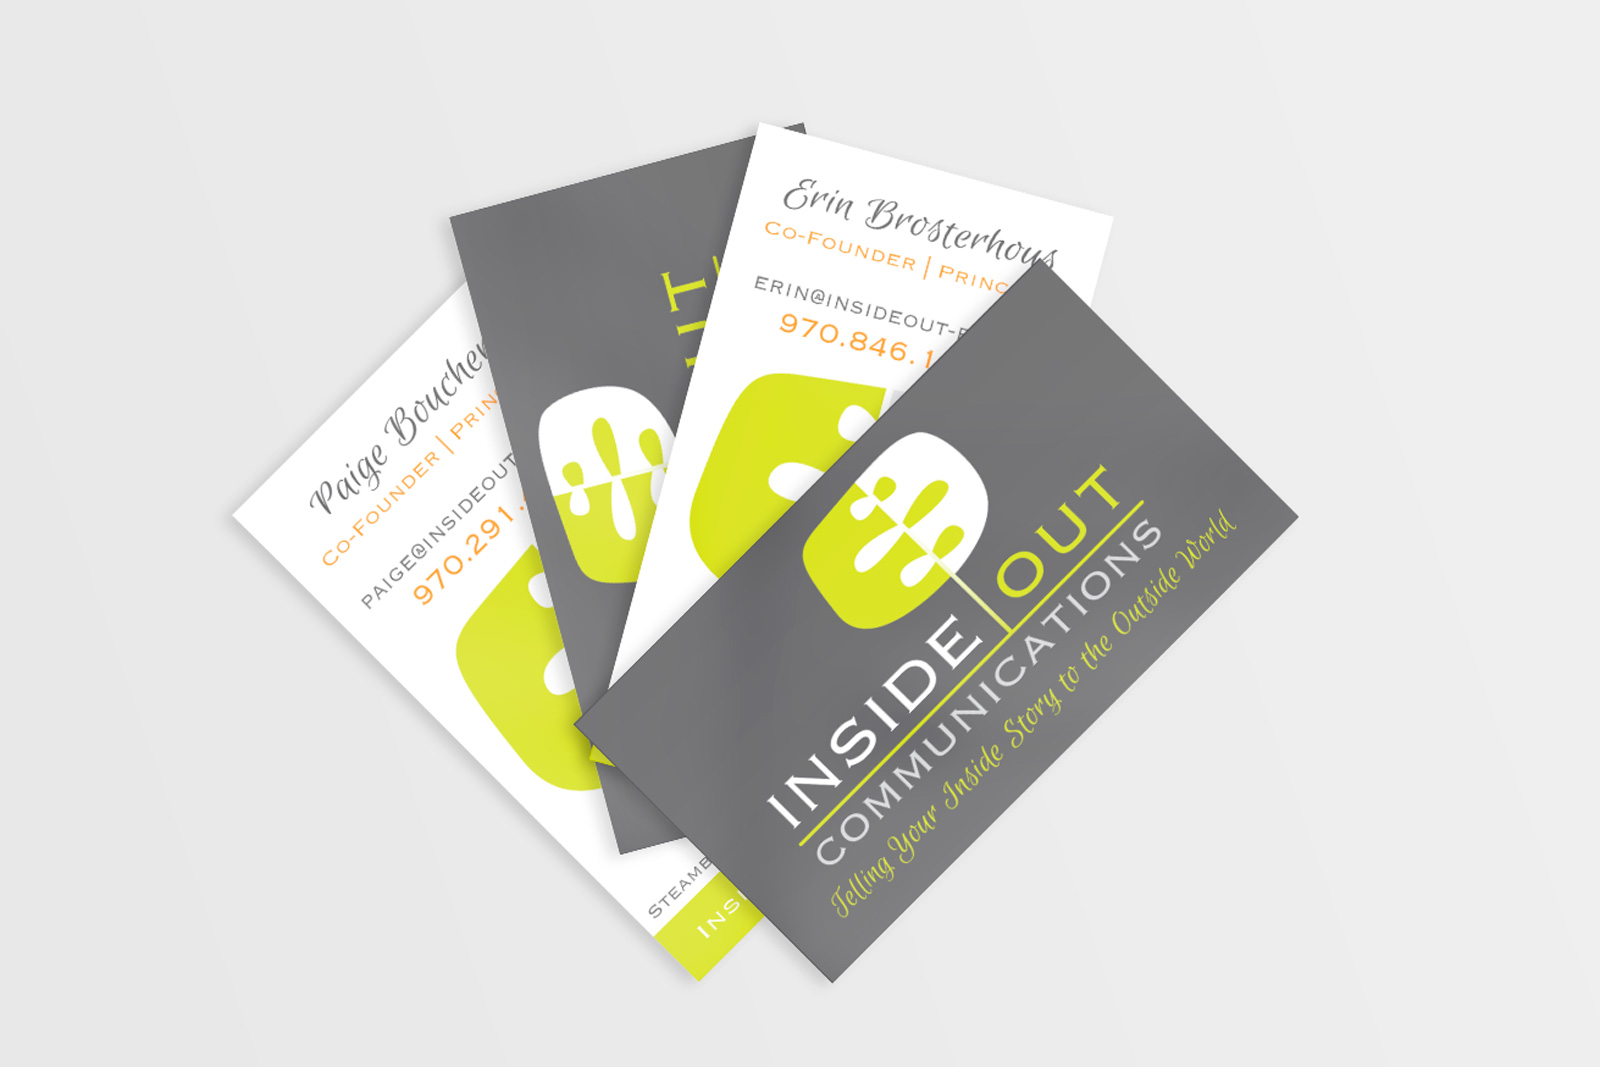 Business Card Printing Calgary Gallery - Card Design And Card Template